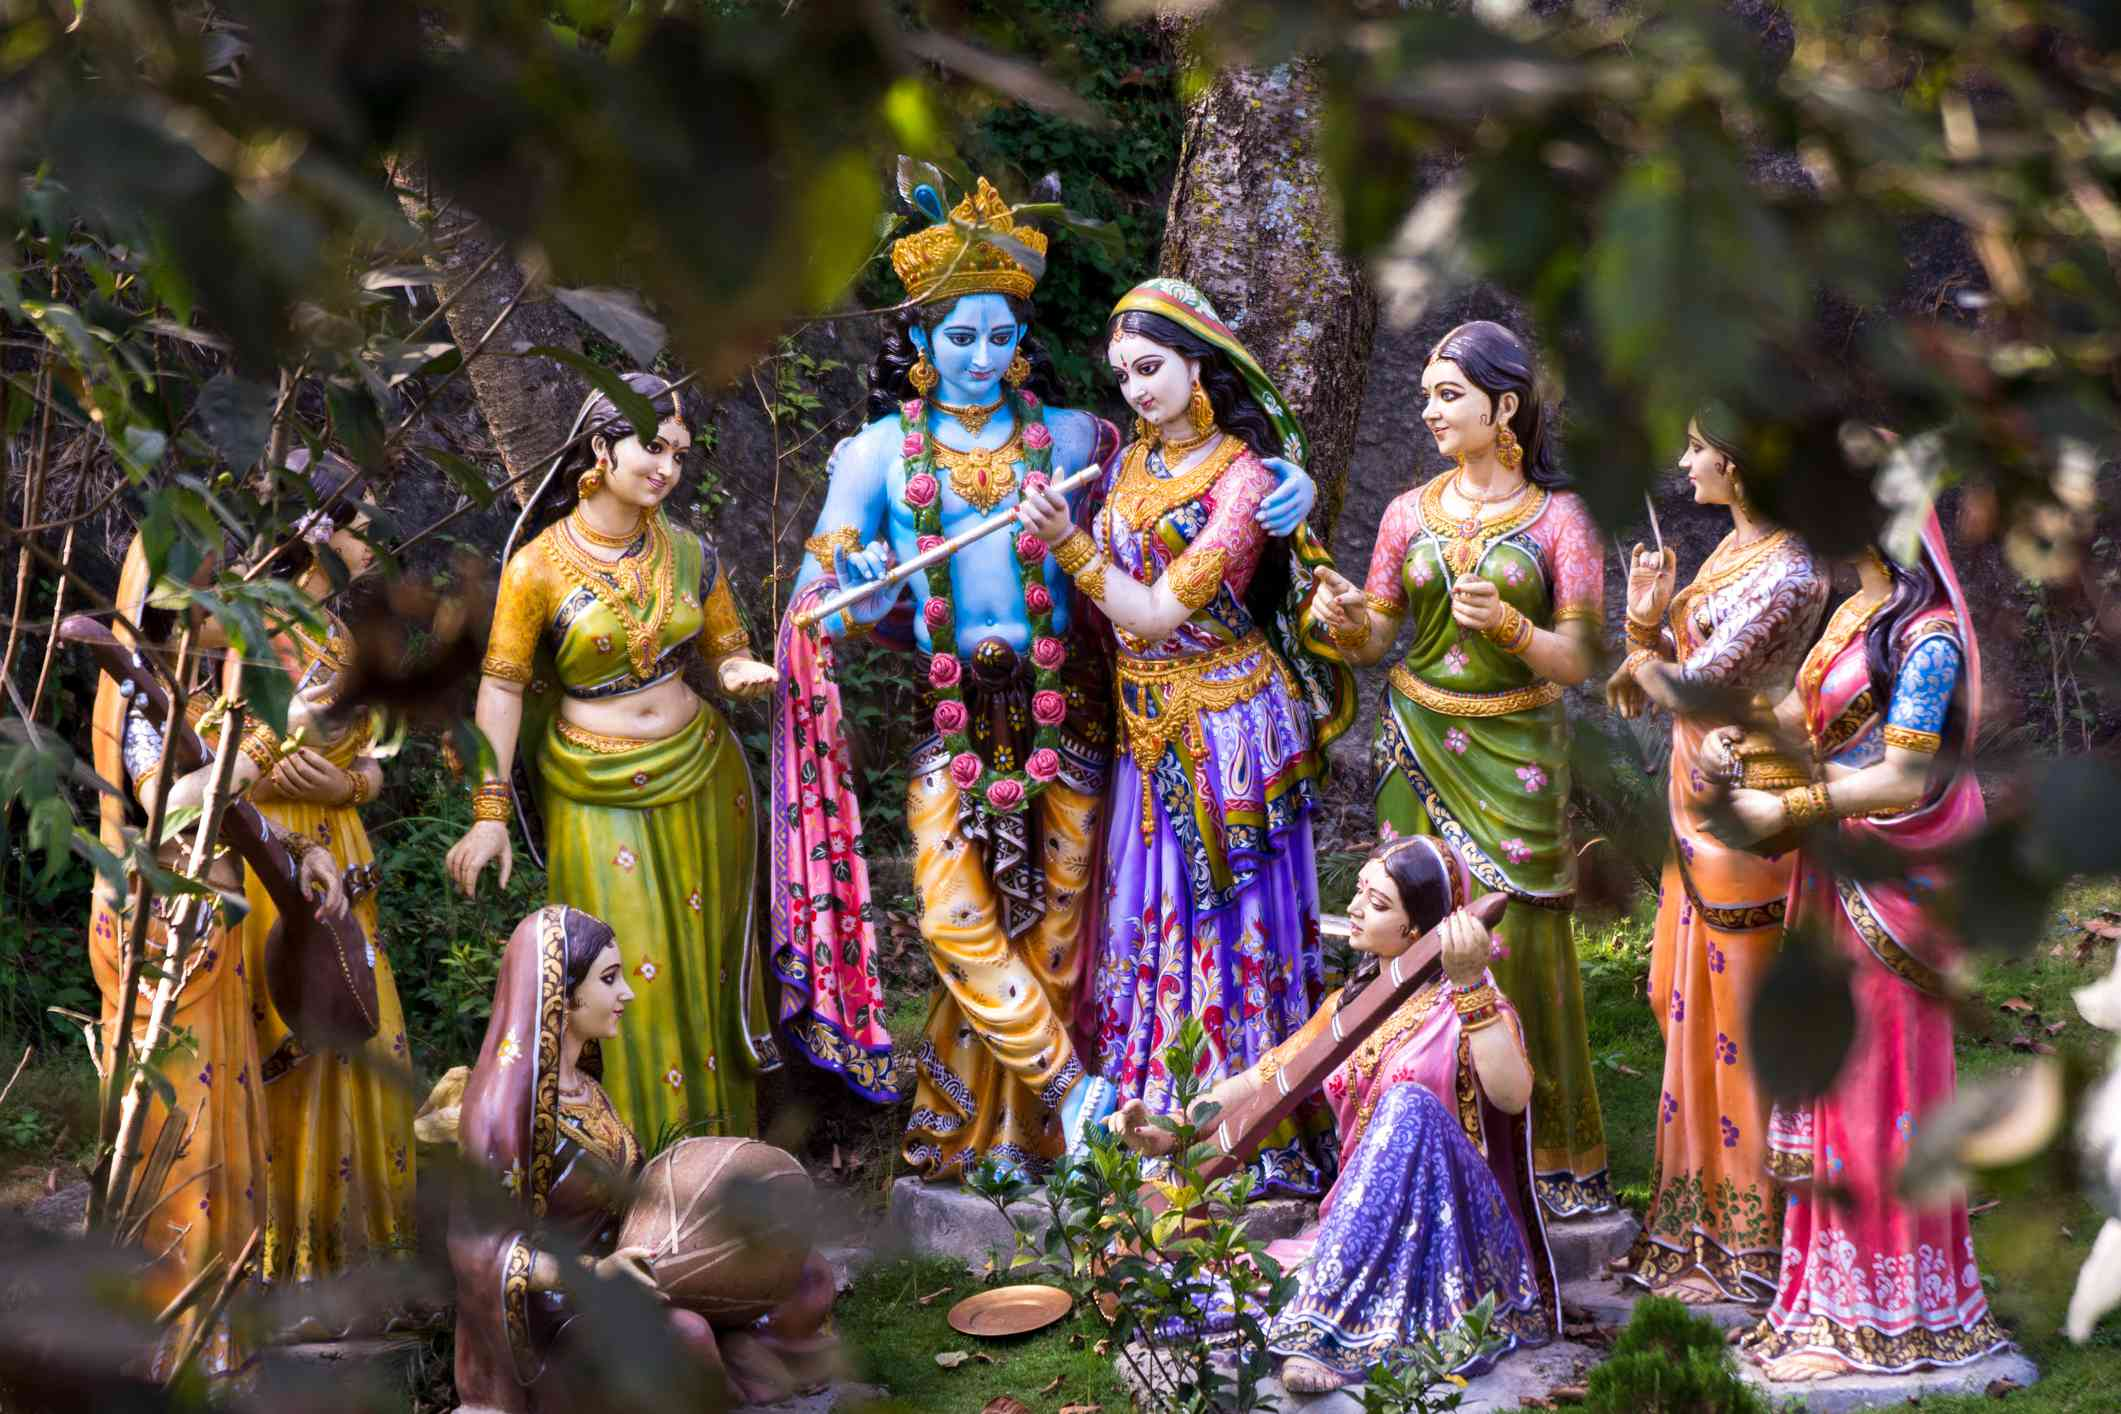 blue Lord Krishna figurine surrounded by figurines of female characters wearing saris